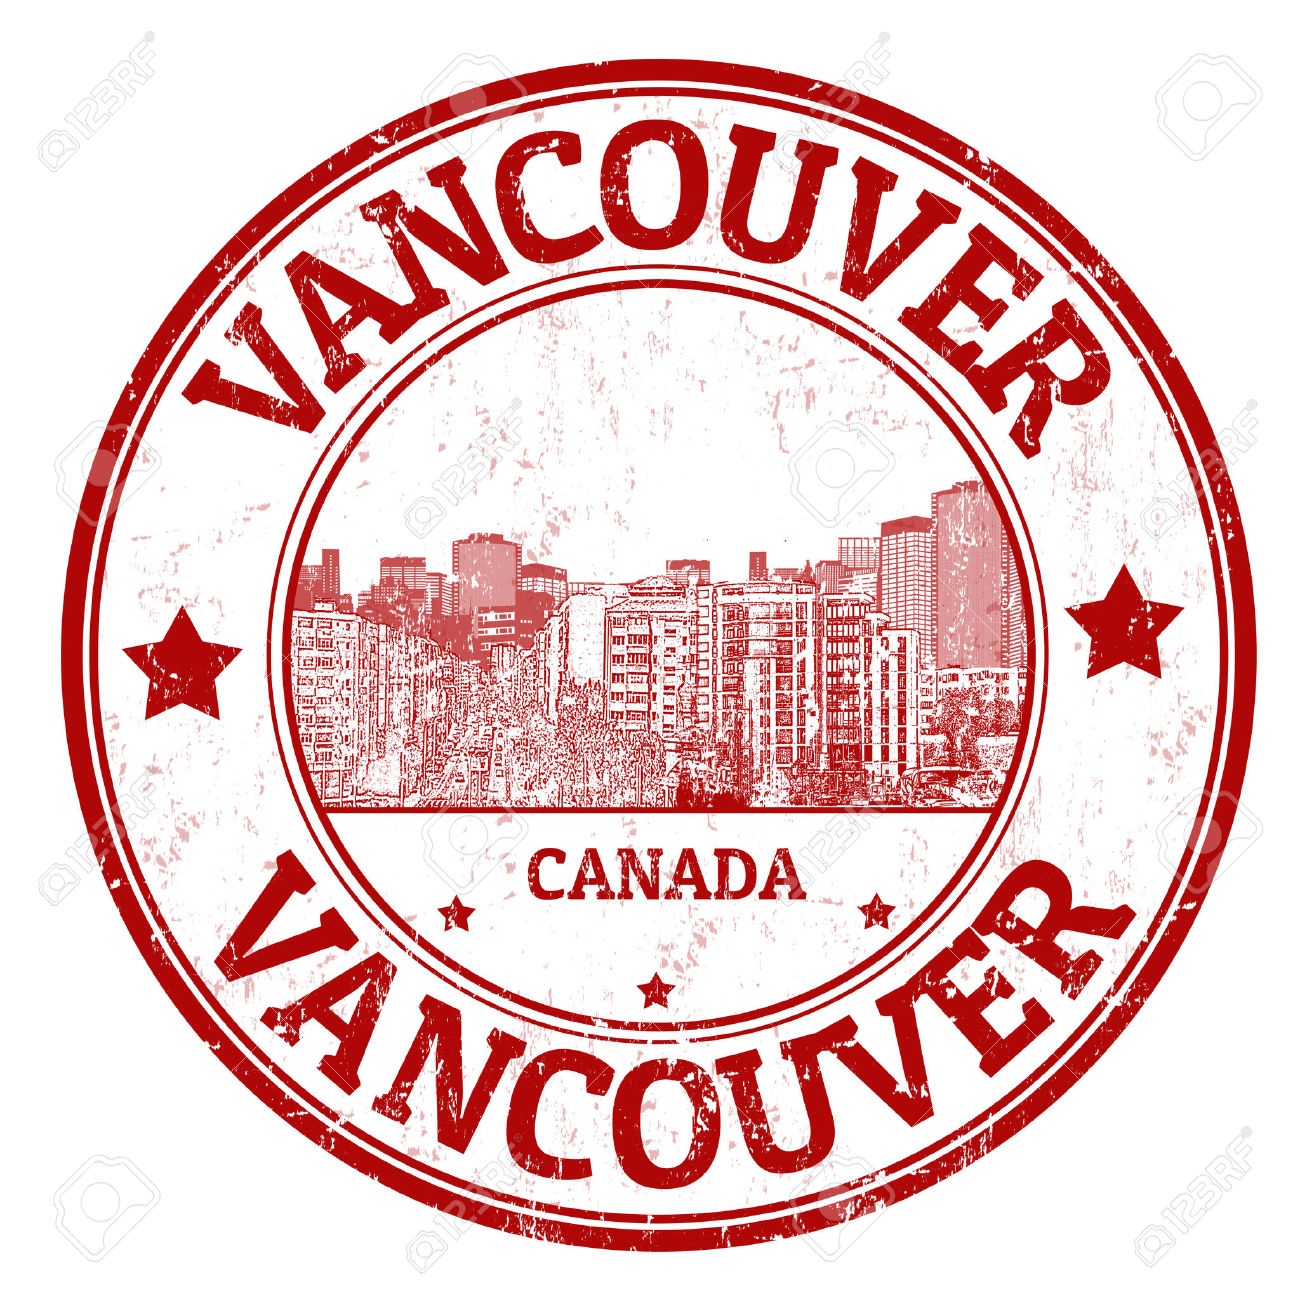 Vancouver clipart #8, Download drawings